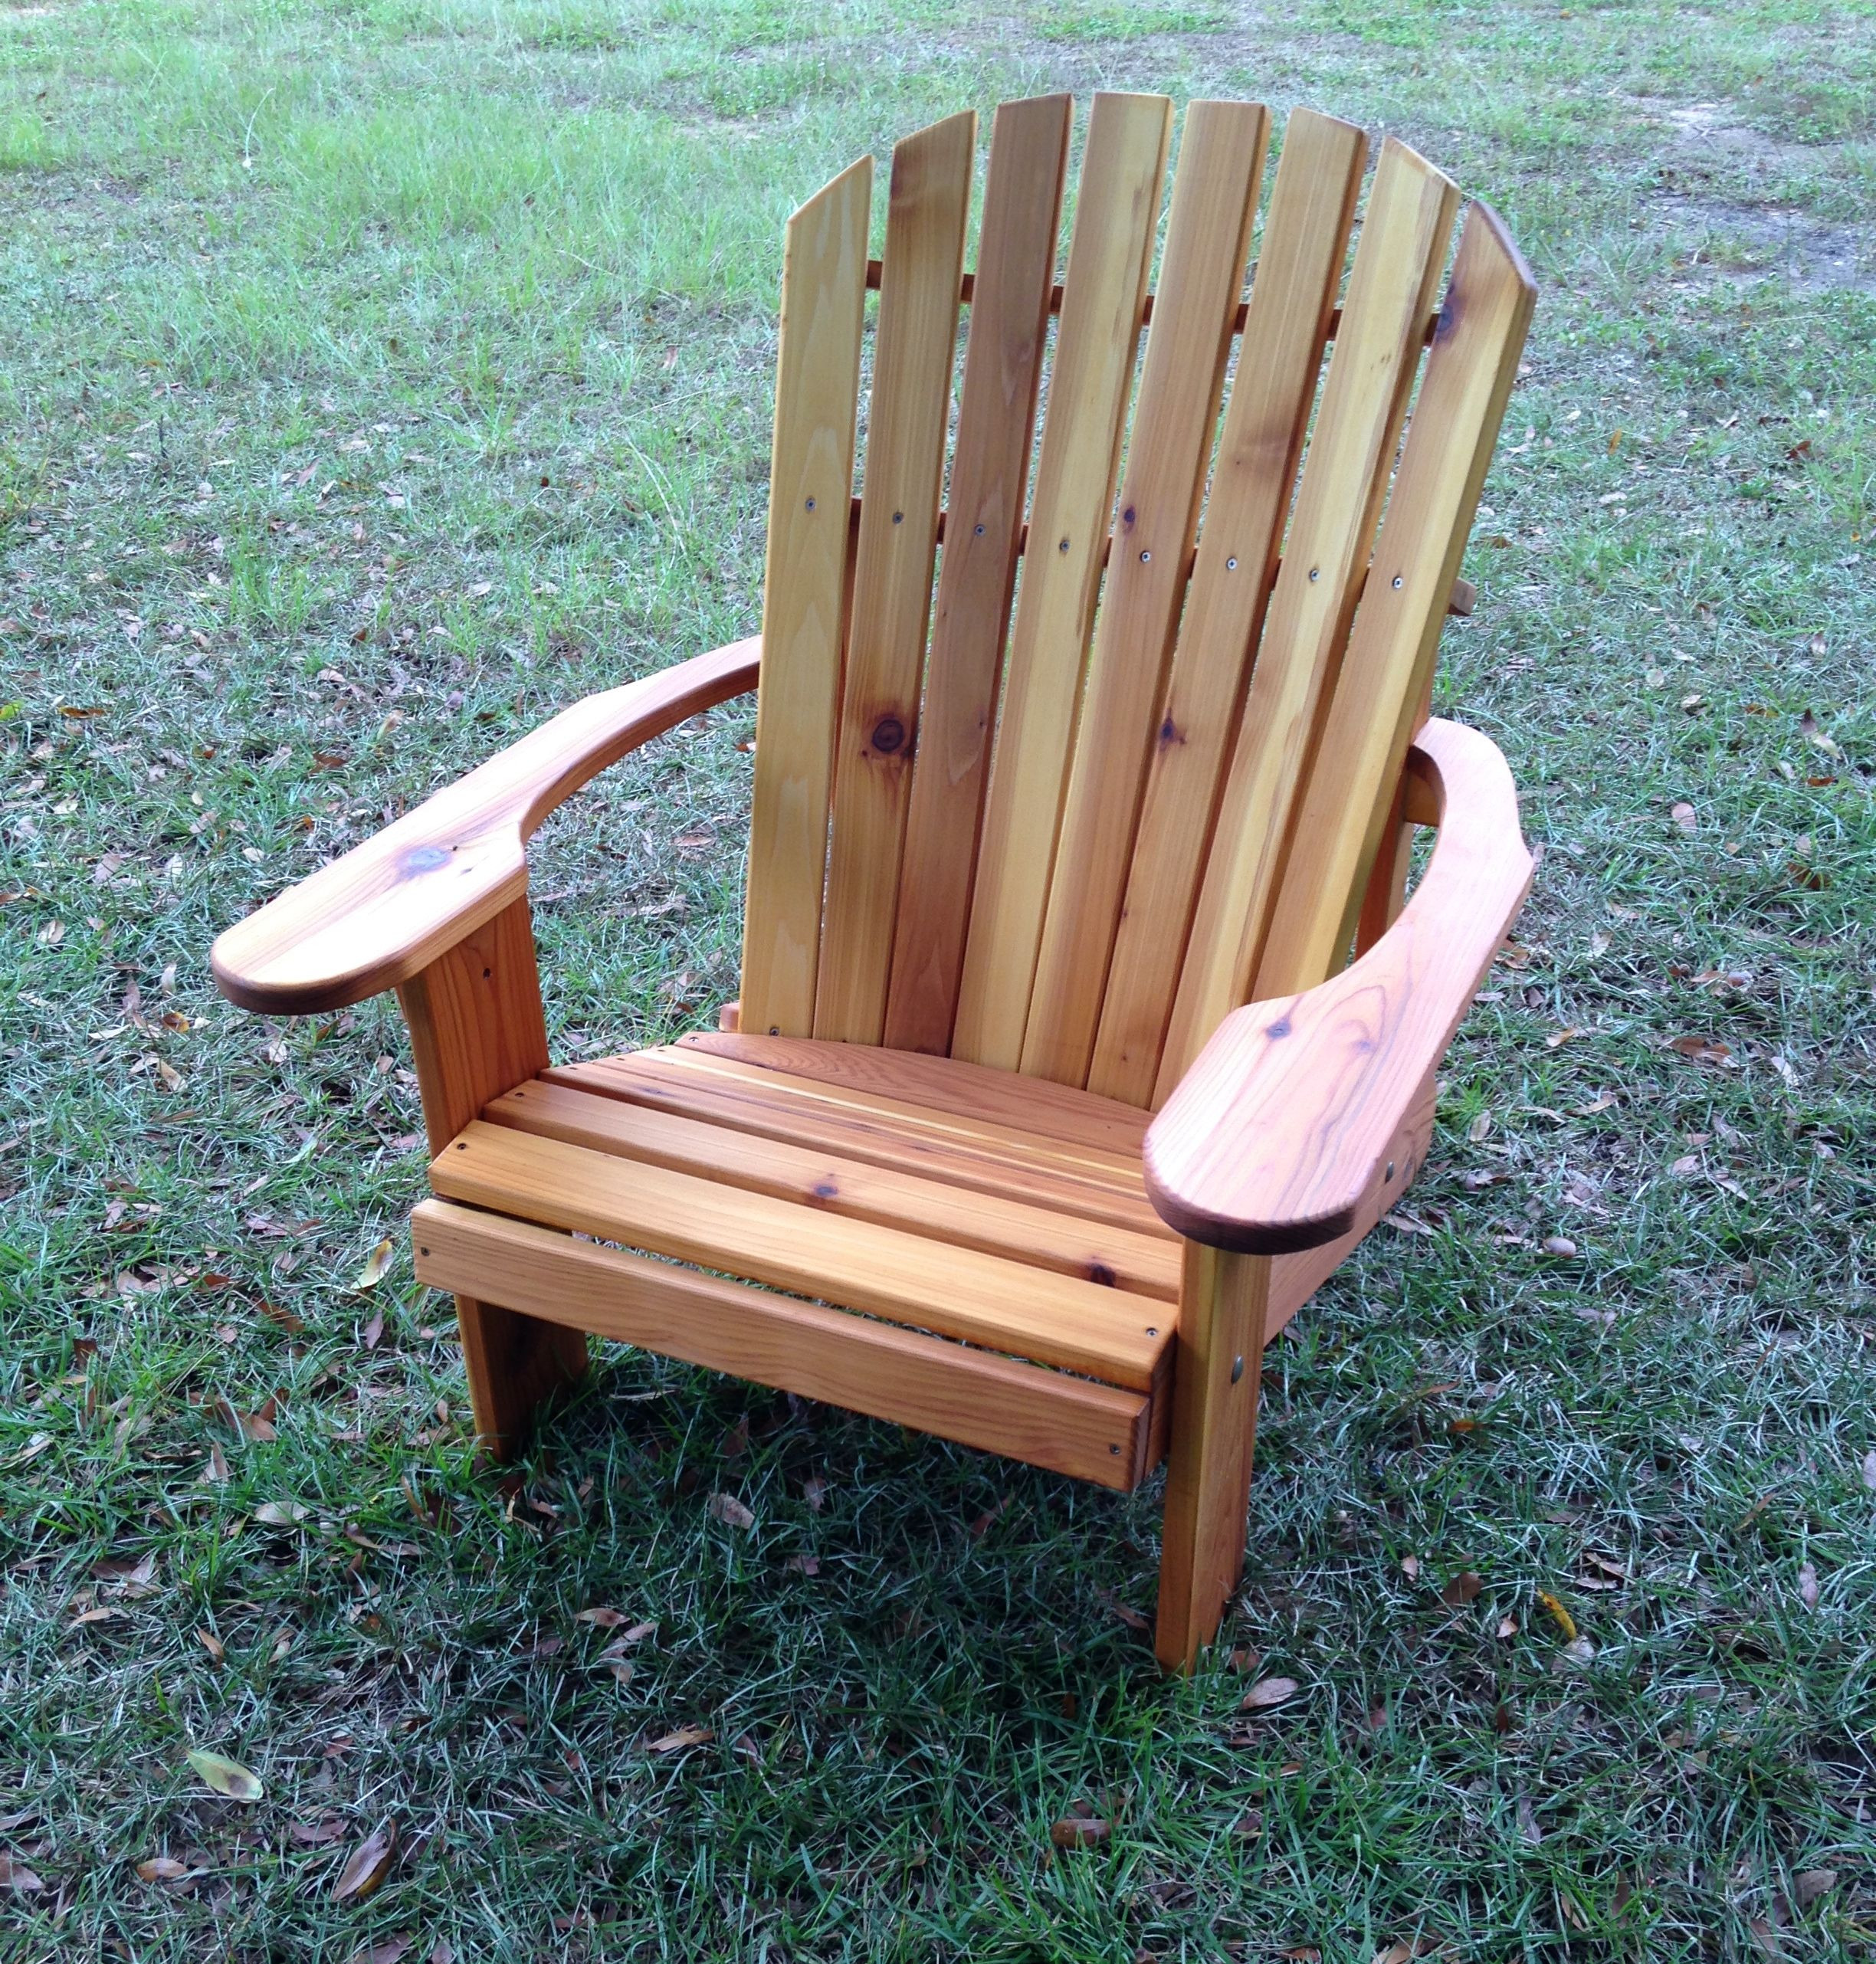 Oversize Adirondack Chair Stained With Pine Stain